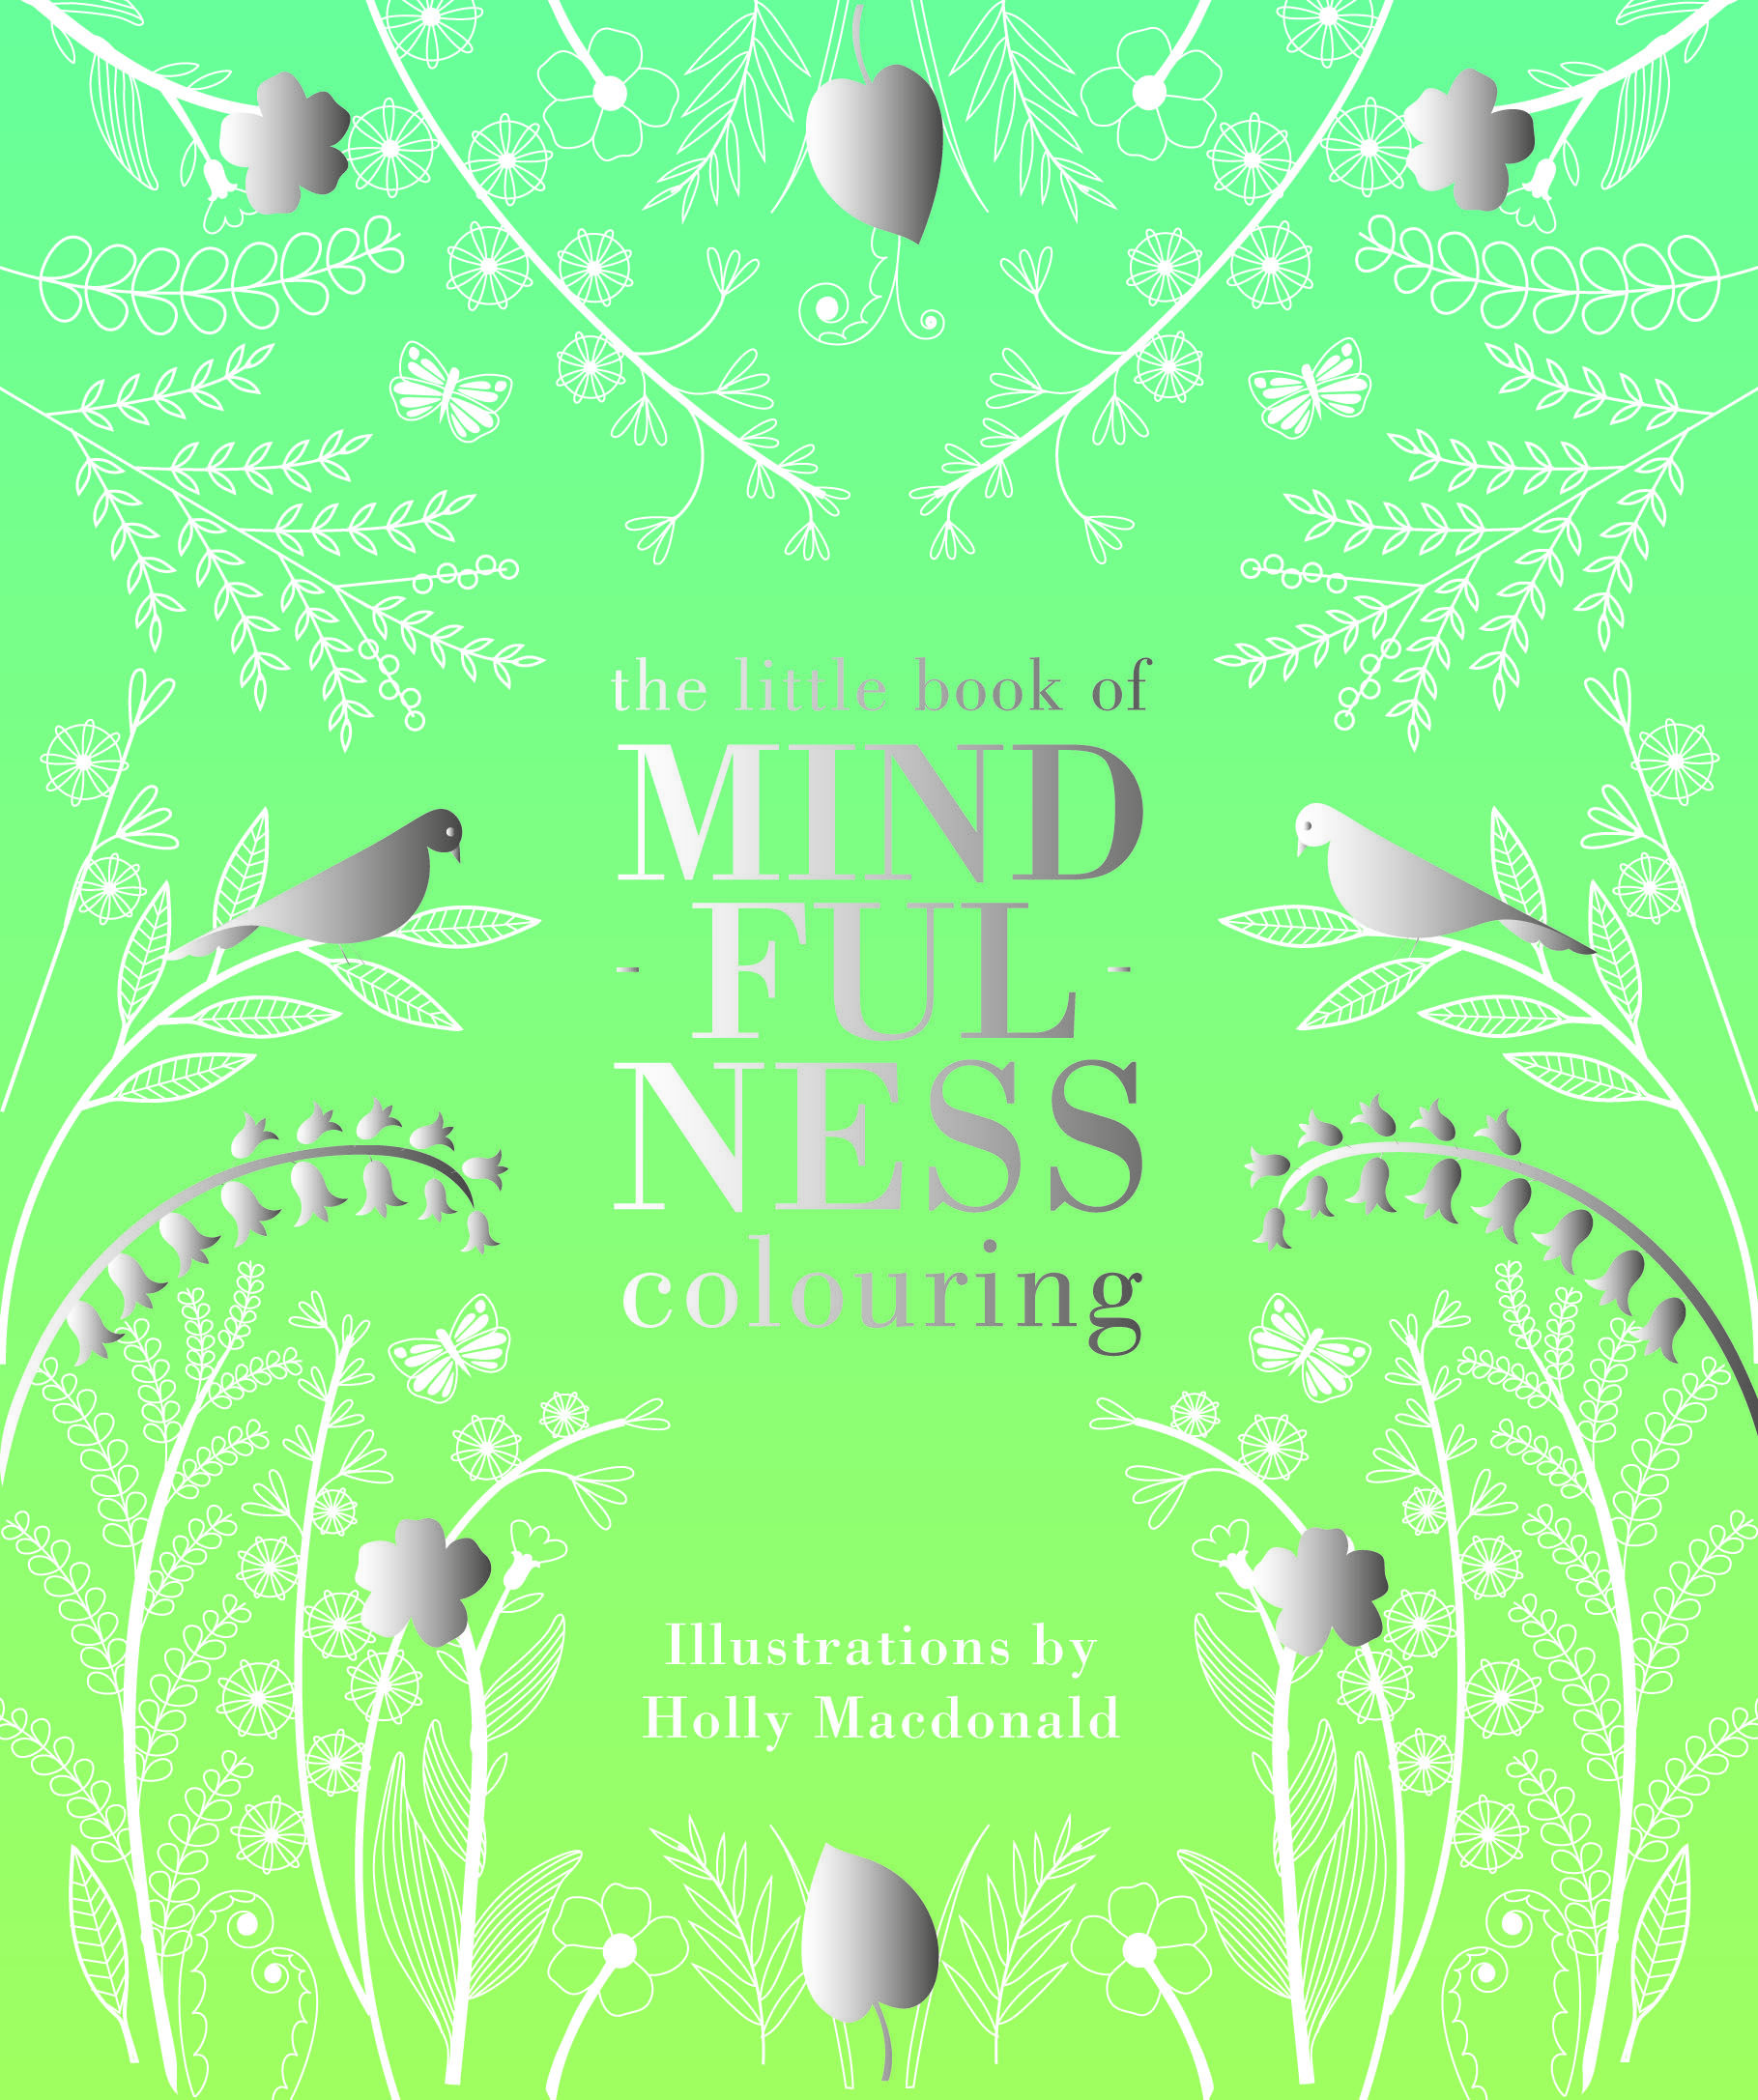 Little book of coloring for mindfulness - The Little Book Of Mindfulness Colouring By Holly Macdonald Quadrille Shortlisted In The